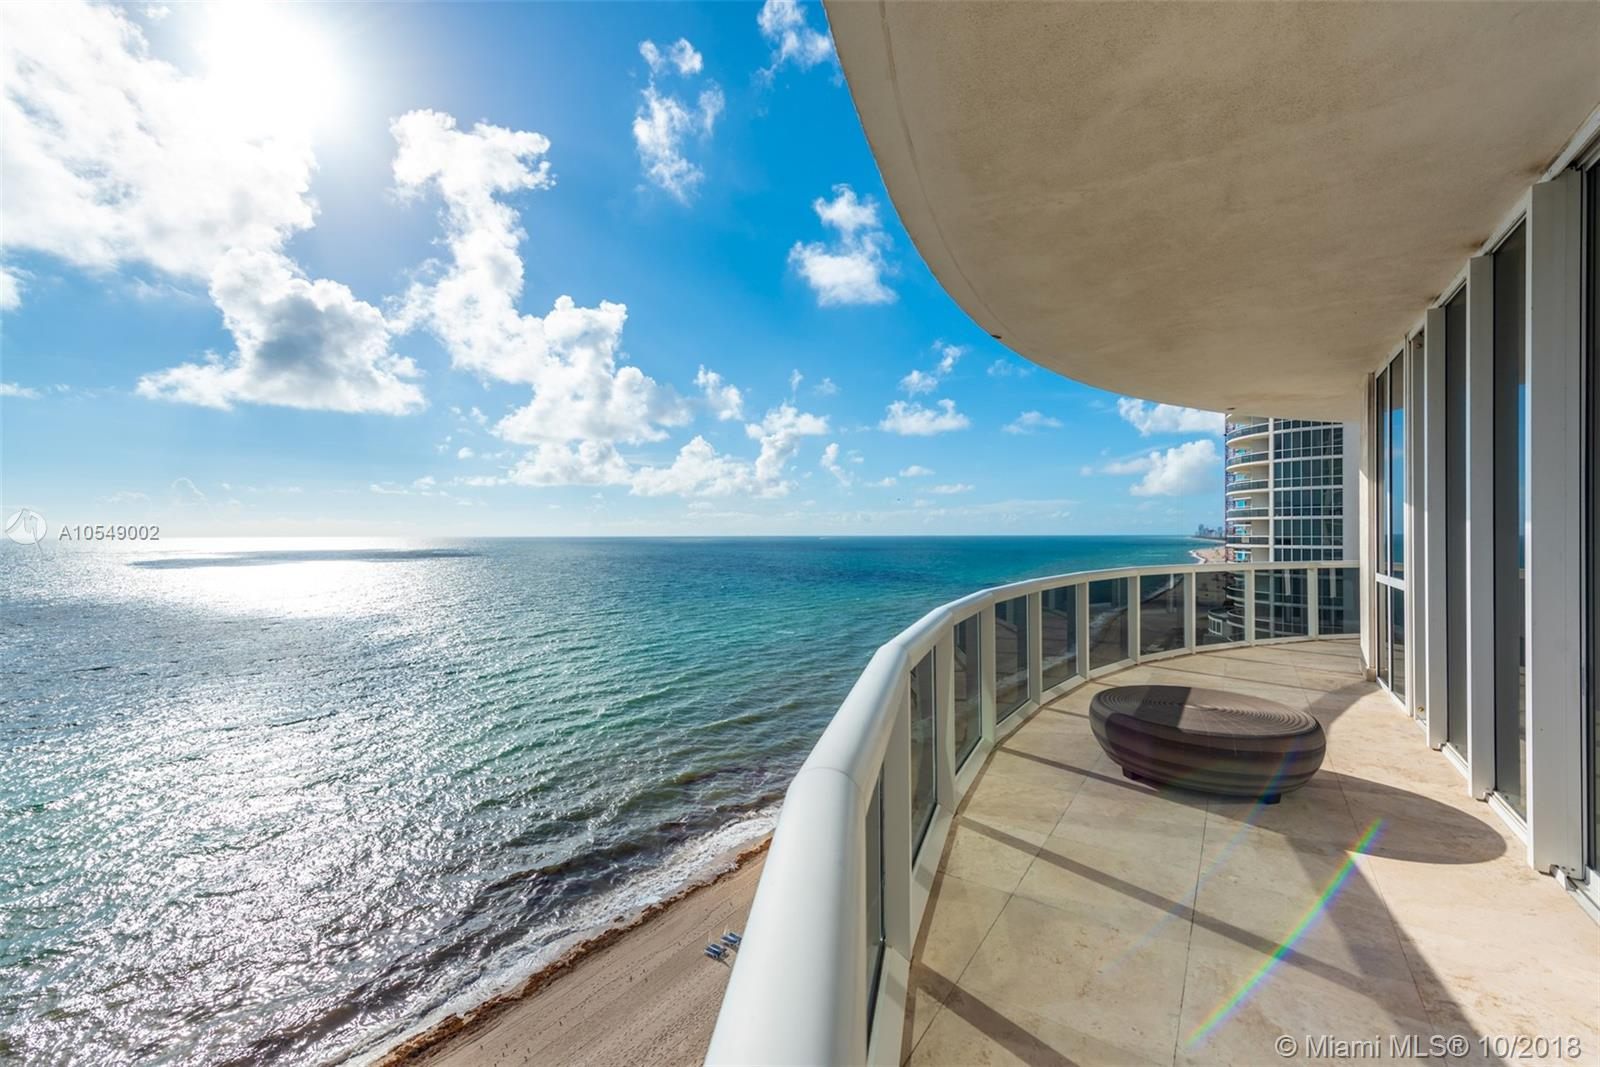 Enjoy Direct Ocean Views And The Best Open Layout At The Trump Tower One Sunny Isles, In This Stunning East Facing Beachfront Residence. Take In Breathtaking Ocean Views From Your Master Bedroom, Floor-To-Ceiling Windows Throughout And An Expansive Terrace Overlooking The Ocean. Features Include Luxurious Upgrades, A Private Foyer Entrance, Marble Floors, A Gourmet Chef+Ógé¼Gäós Kitchen With Top-Of-The-Line Appliances, A Tandem Parking Space, Dedicated Laundry Room, Built Out Closets And Blackout Blinds In The Bedrooms. The Trump Tower Sunny Isles Offers Five Star Resort Style Amenities Including A Restaurant, Fitness Center, Pool, Clubhouse, Valet, 24-Hour Security, Concierge And Beach Access.